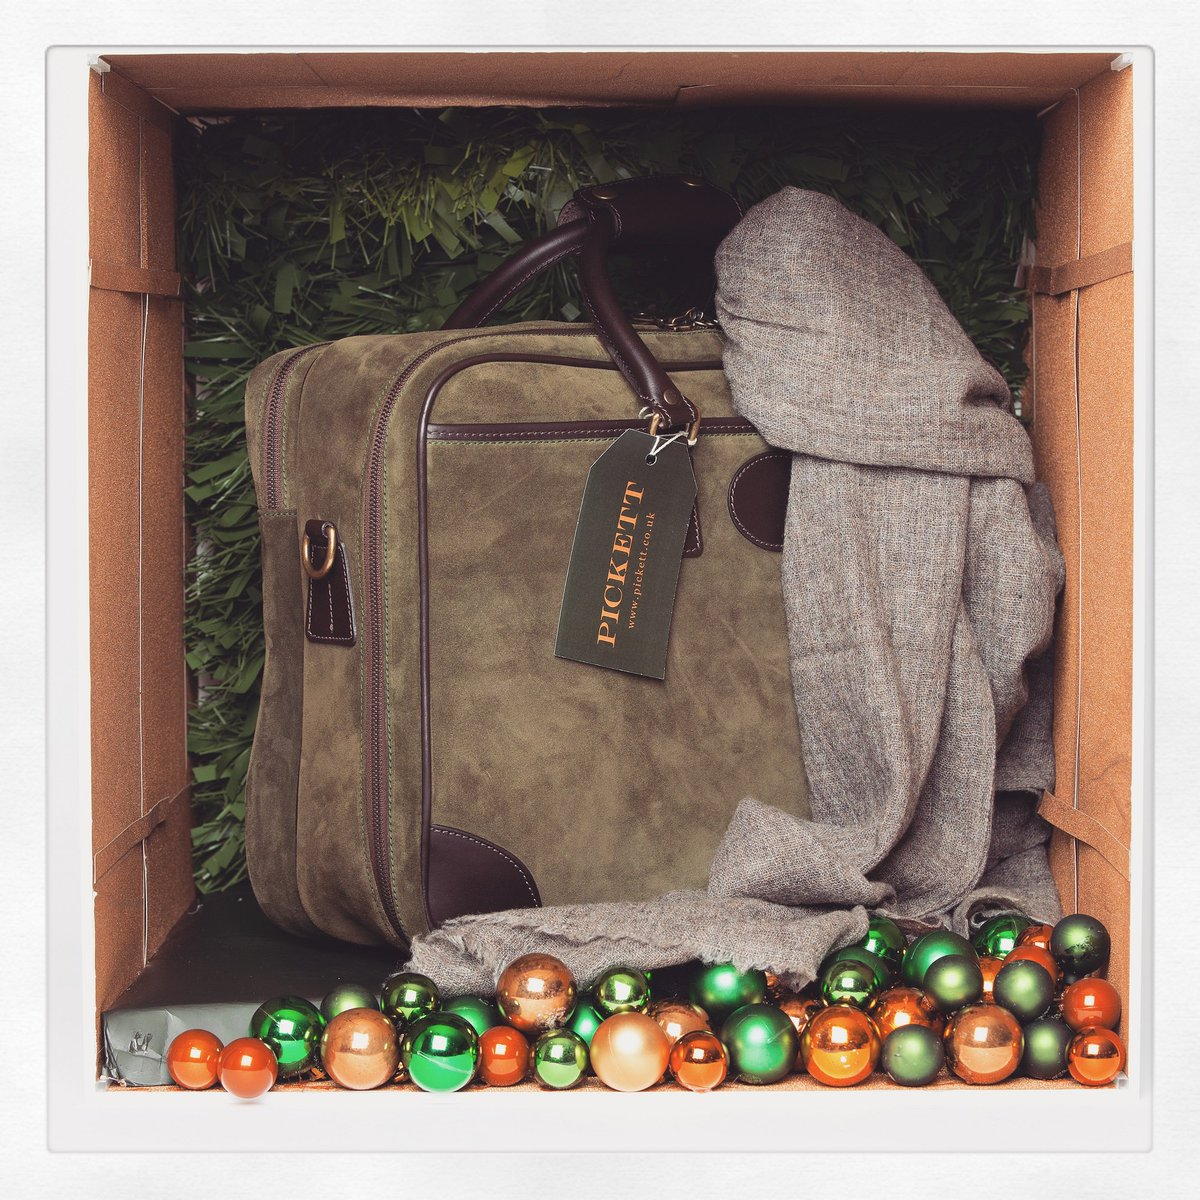 Today's exclusive prize is a green suede travel bag and scarf from Pickett London @pickettlondon #AMayFairChristmas https://t.co/OzyIIpZEgy